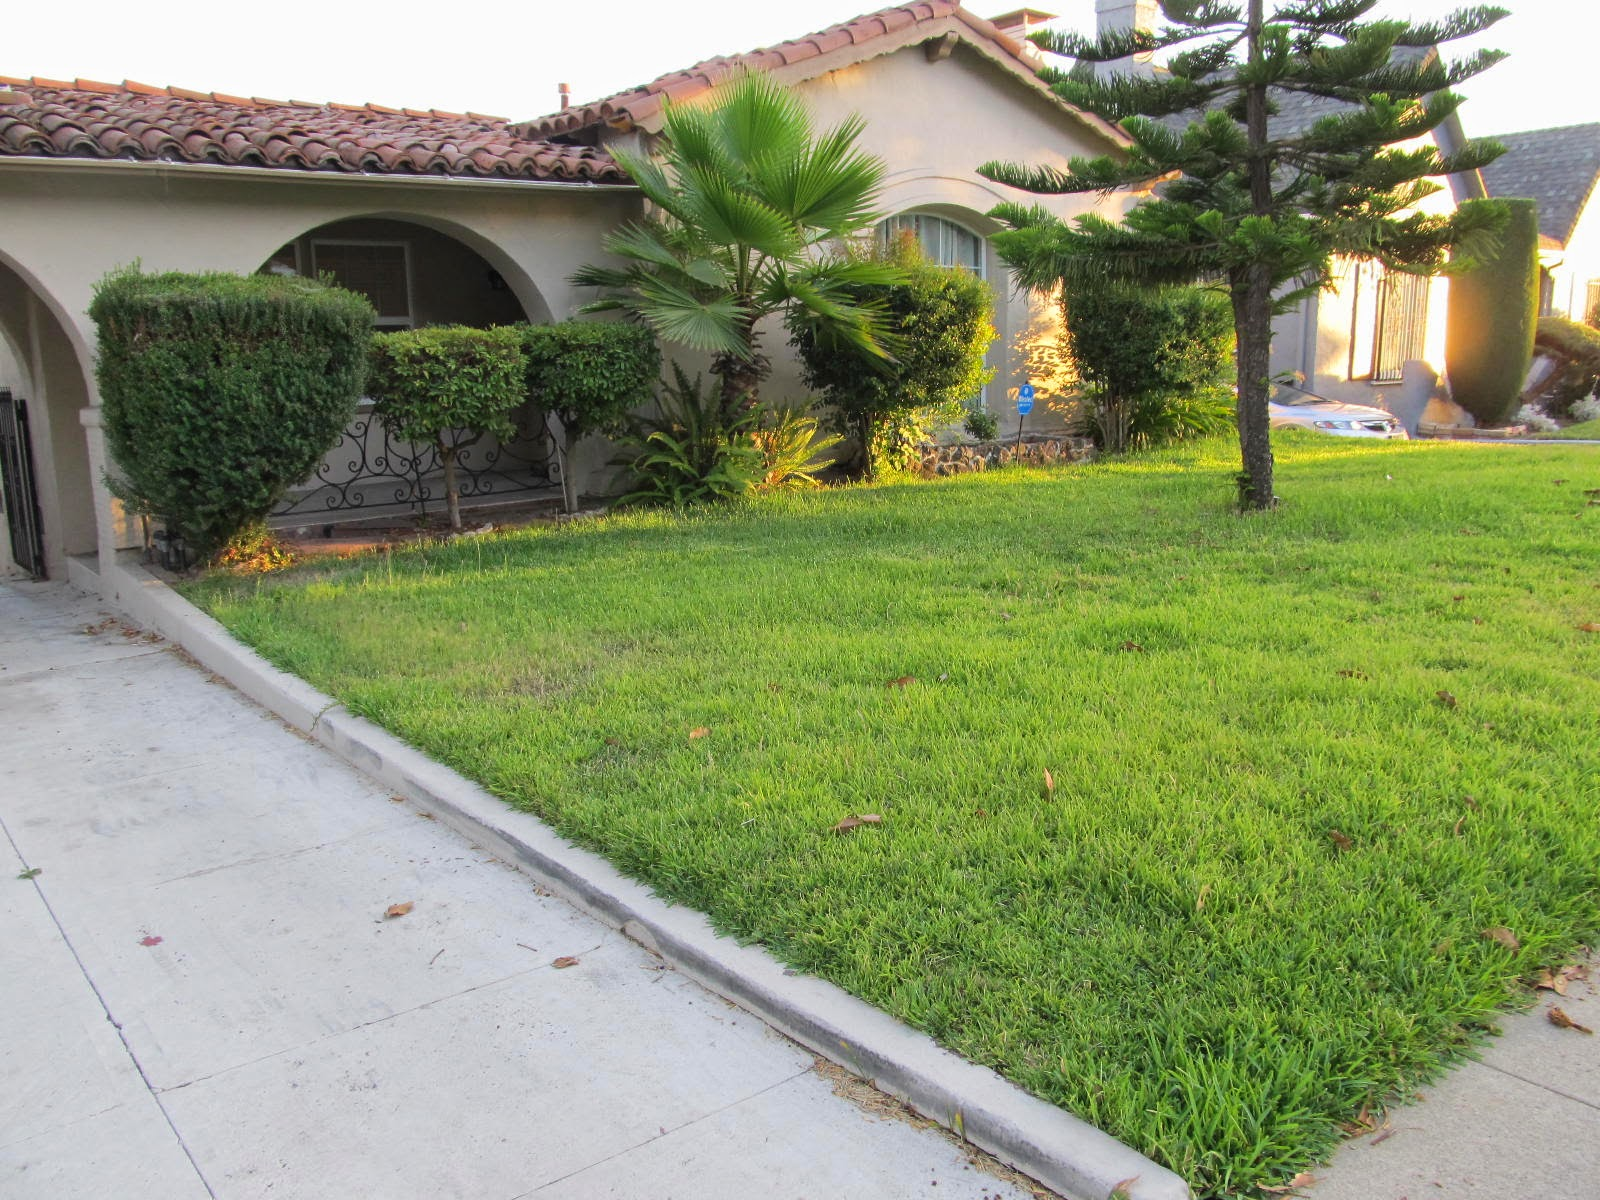 Fairy Yardmother Landscape Design: From Front Lawn to Low ...